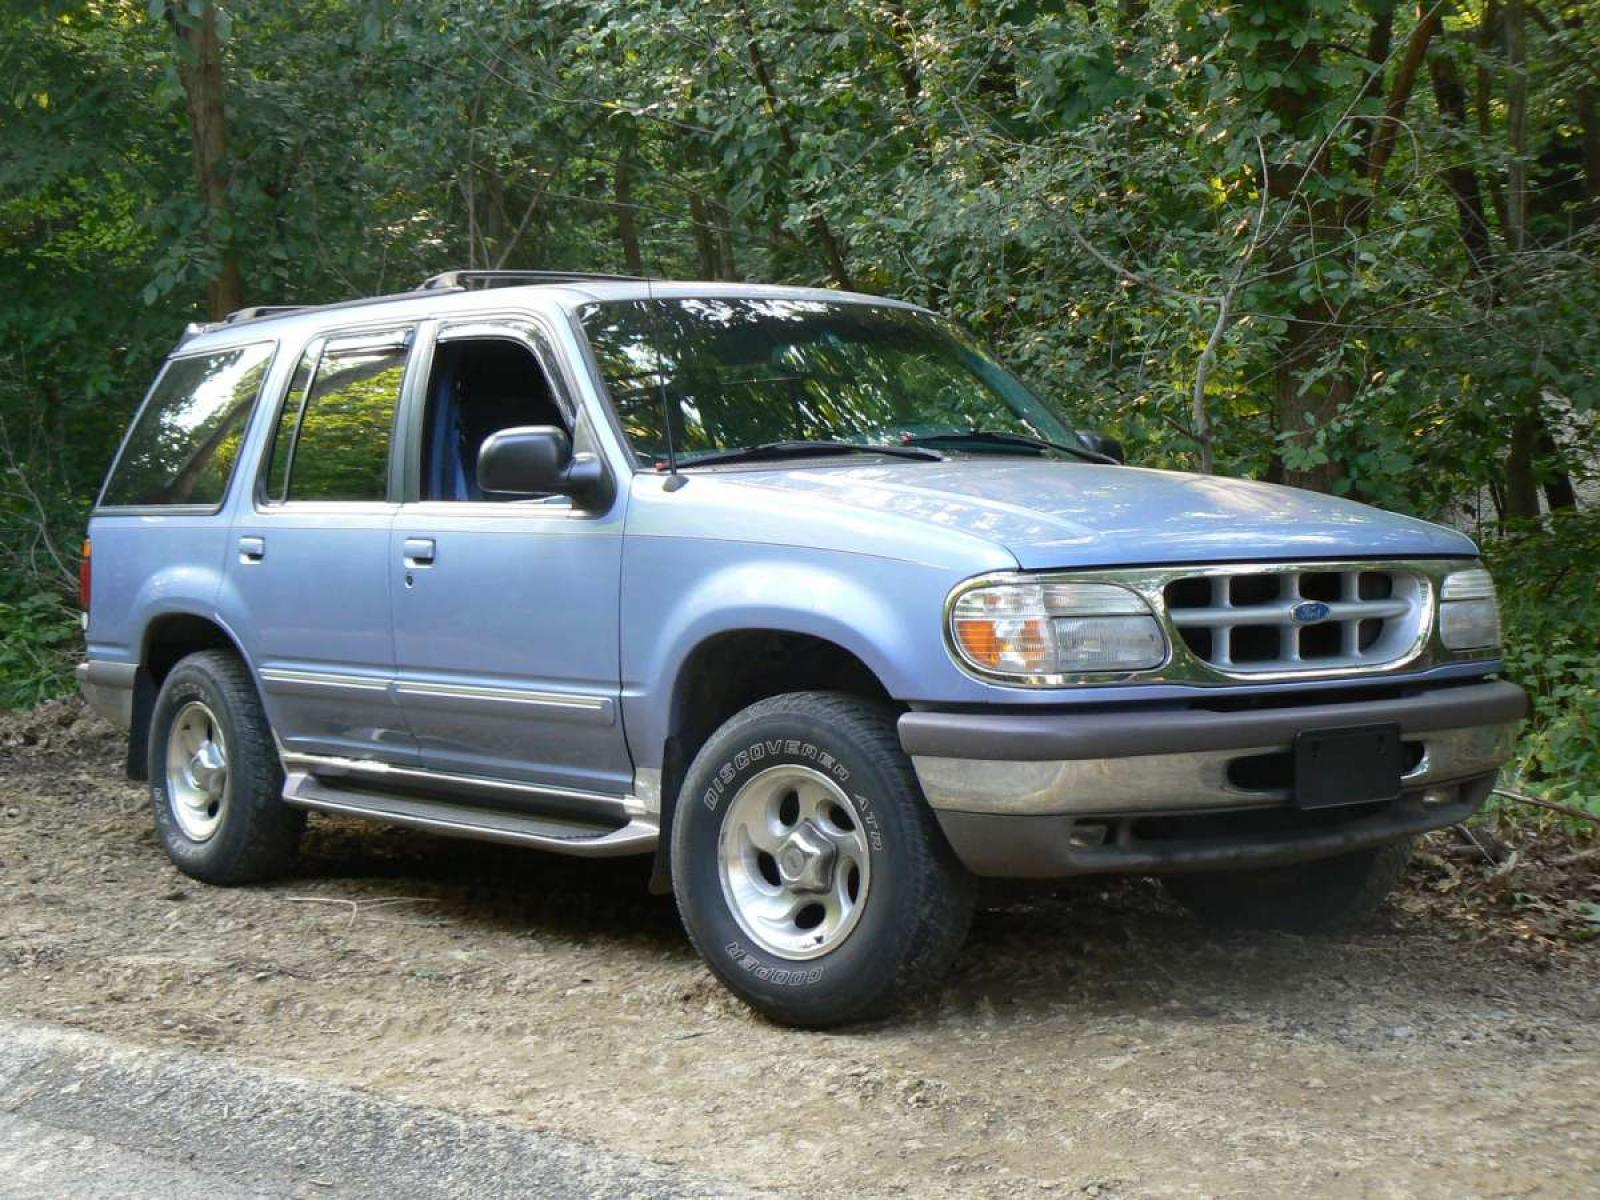 1998 Ford Explorer #2 Ford Explorer #2 800 1024 1280 1600 origin ...